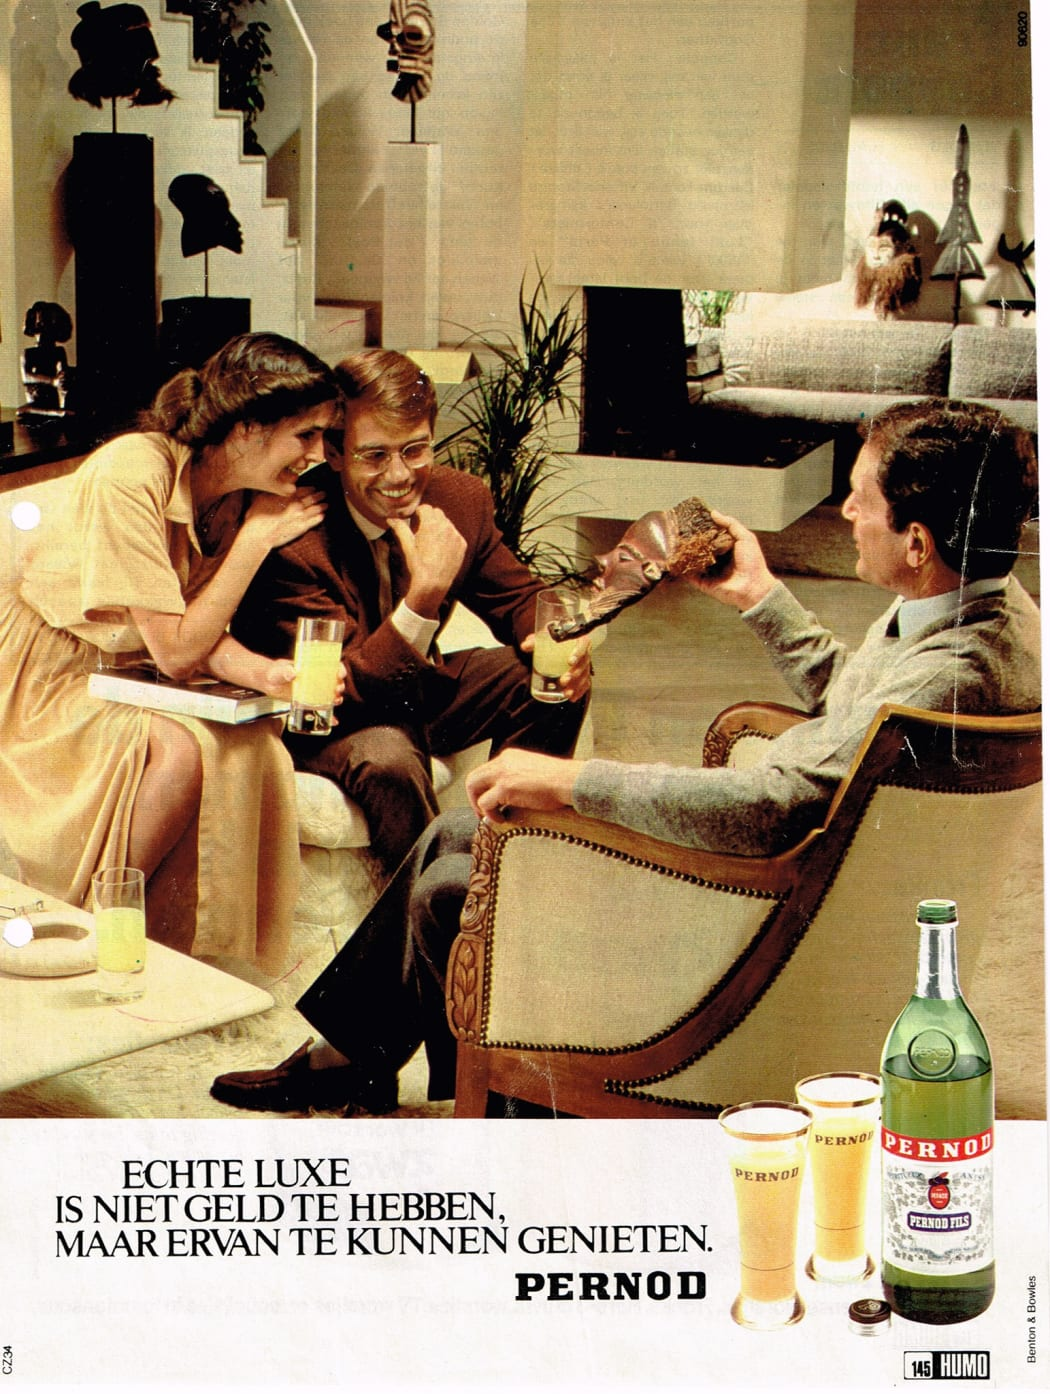 African art in a Pernod advertisement